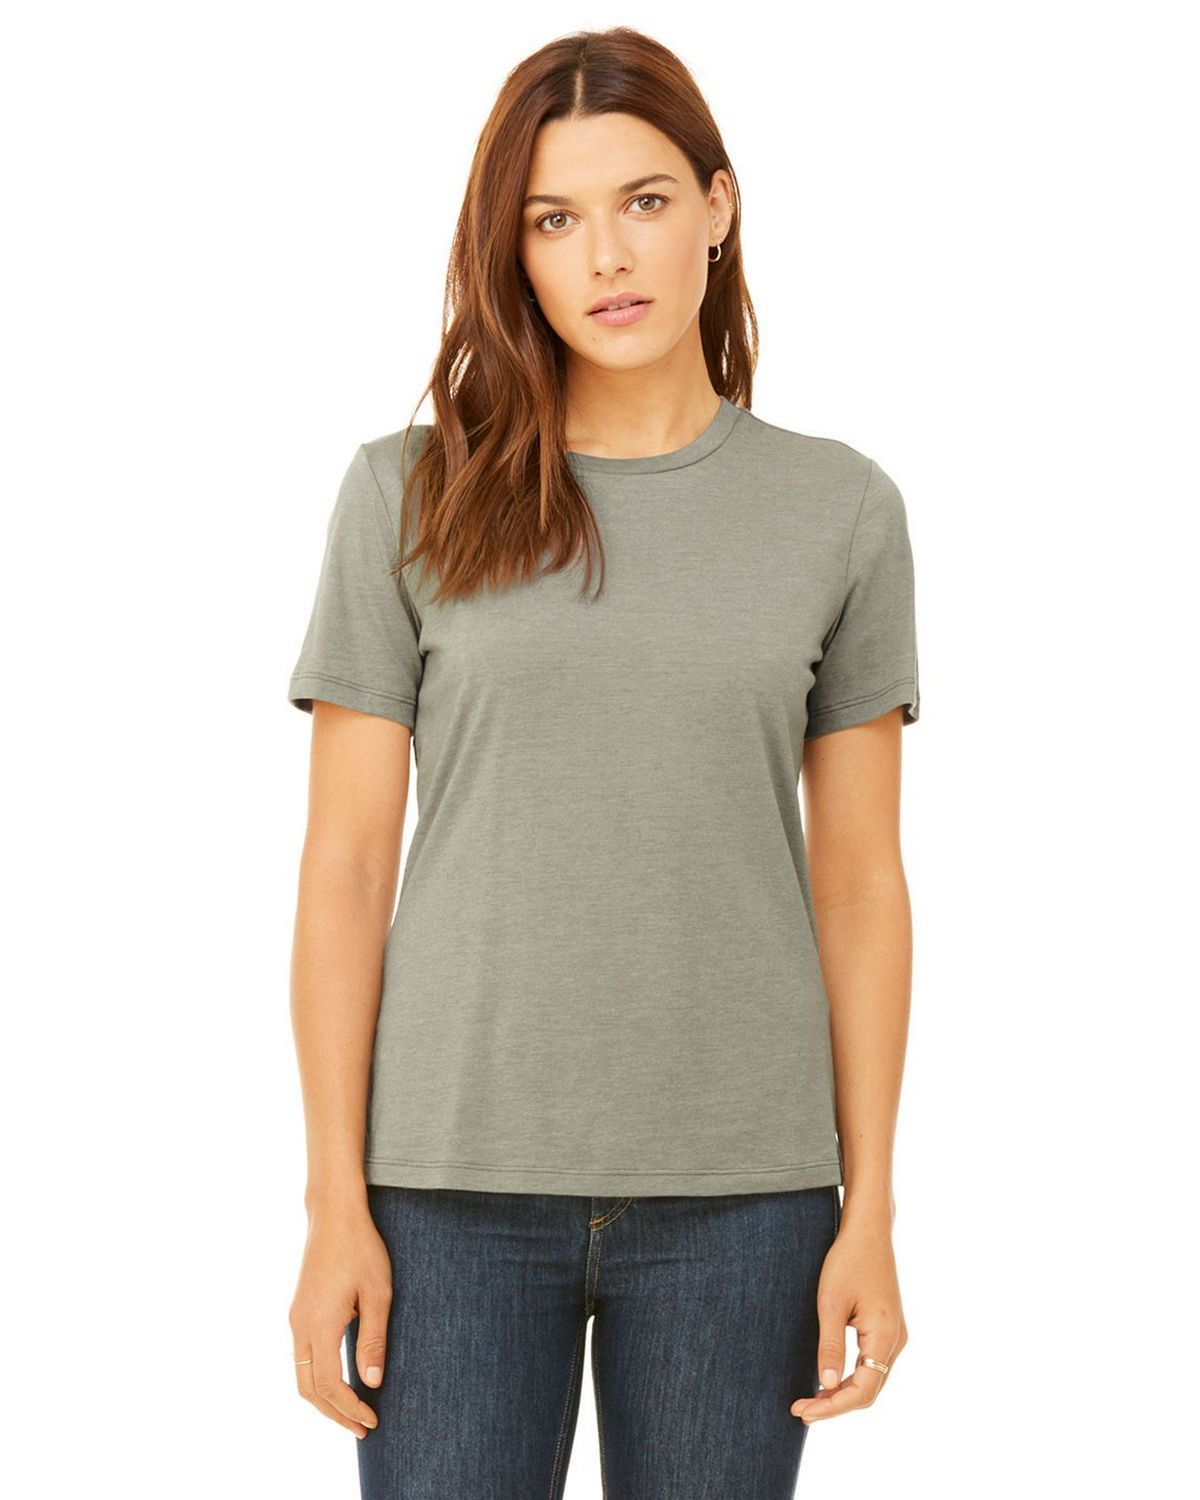 Bella + Canvas B6400 Women's Missys Relaxed Jersey Short-Sleeve T-Shirt - Heather Stone - S from Bella + Canvas